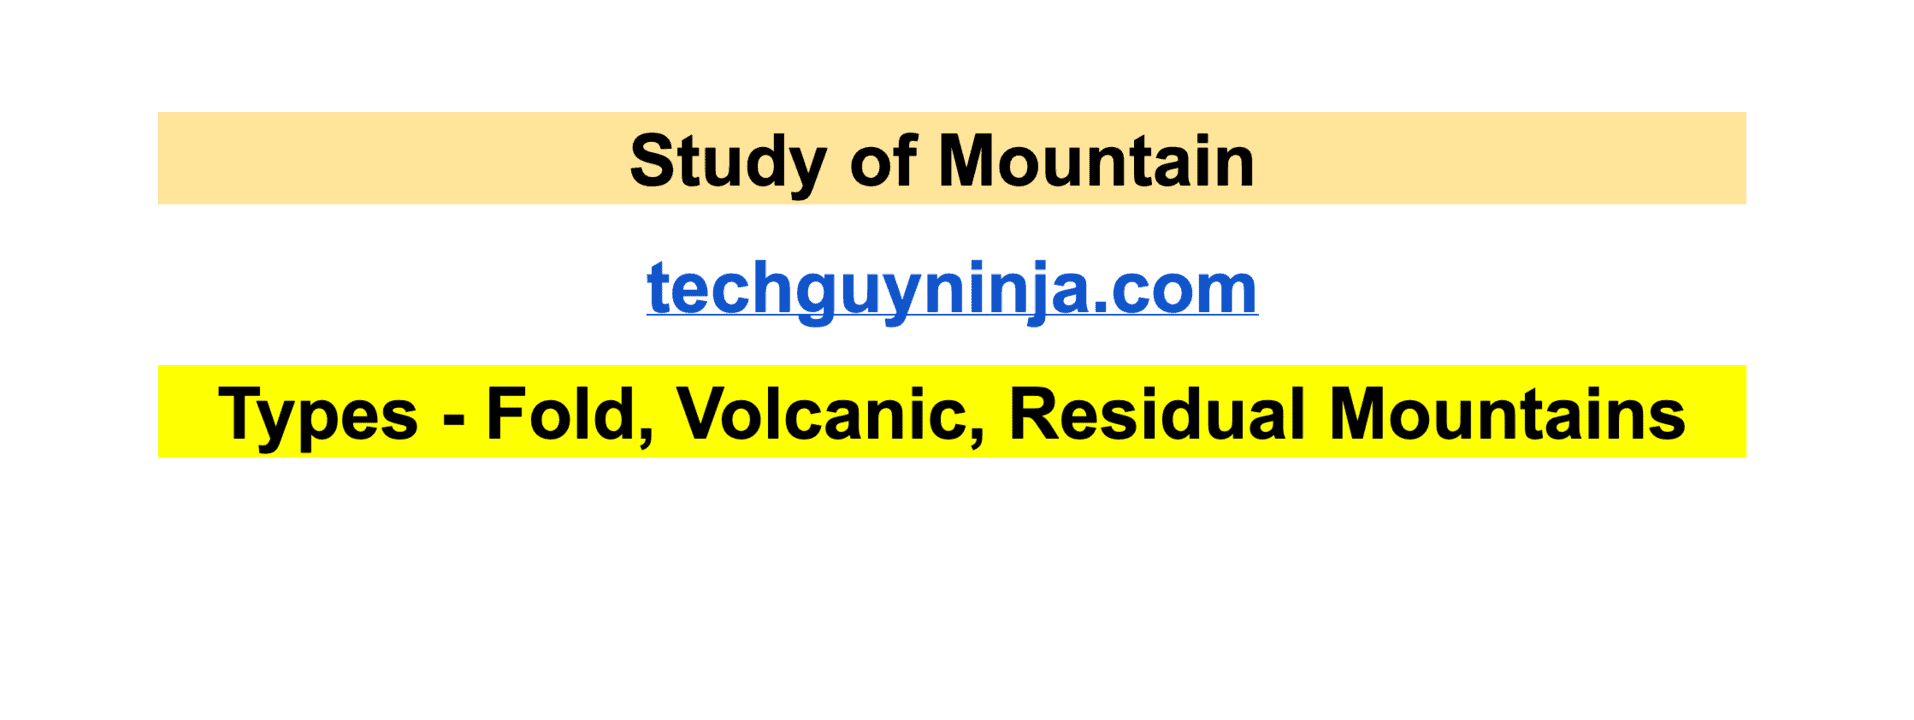 Study of Mountain Types Fold Volcanic Residual Mountains